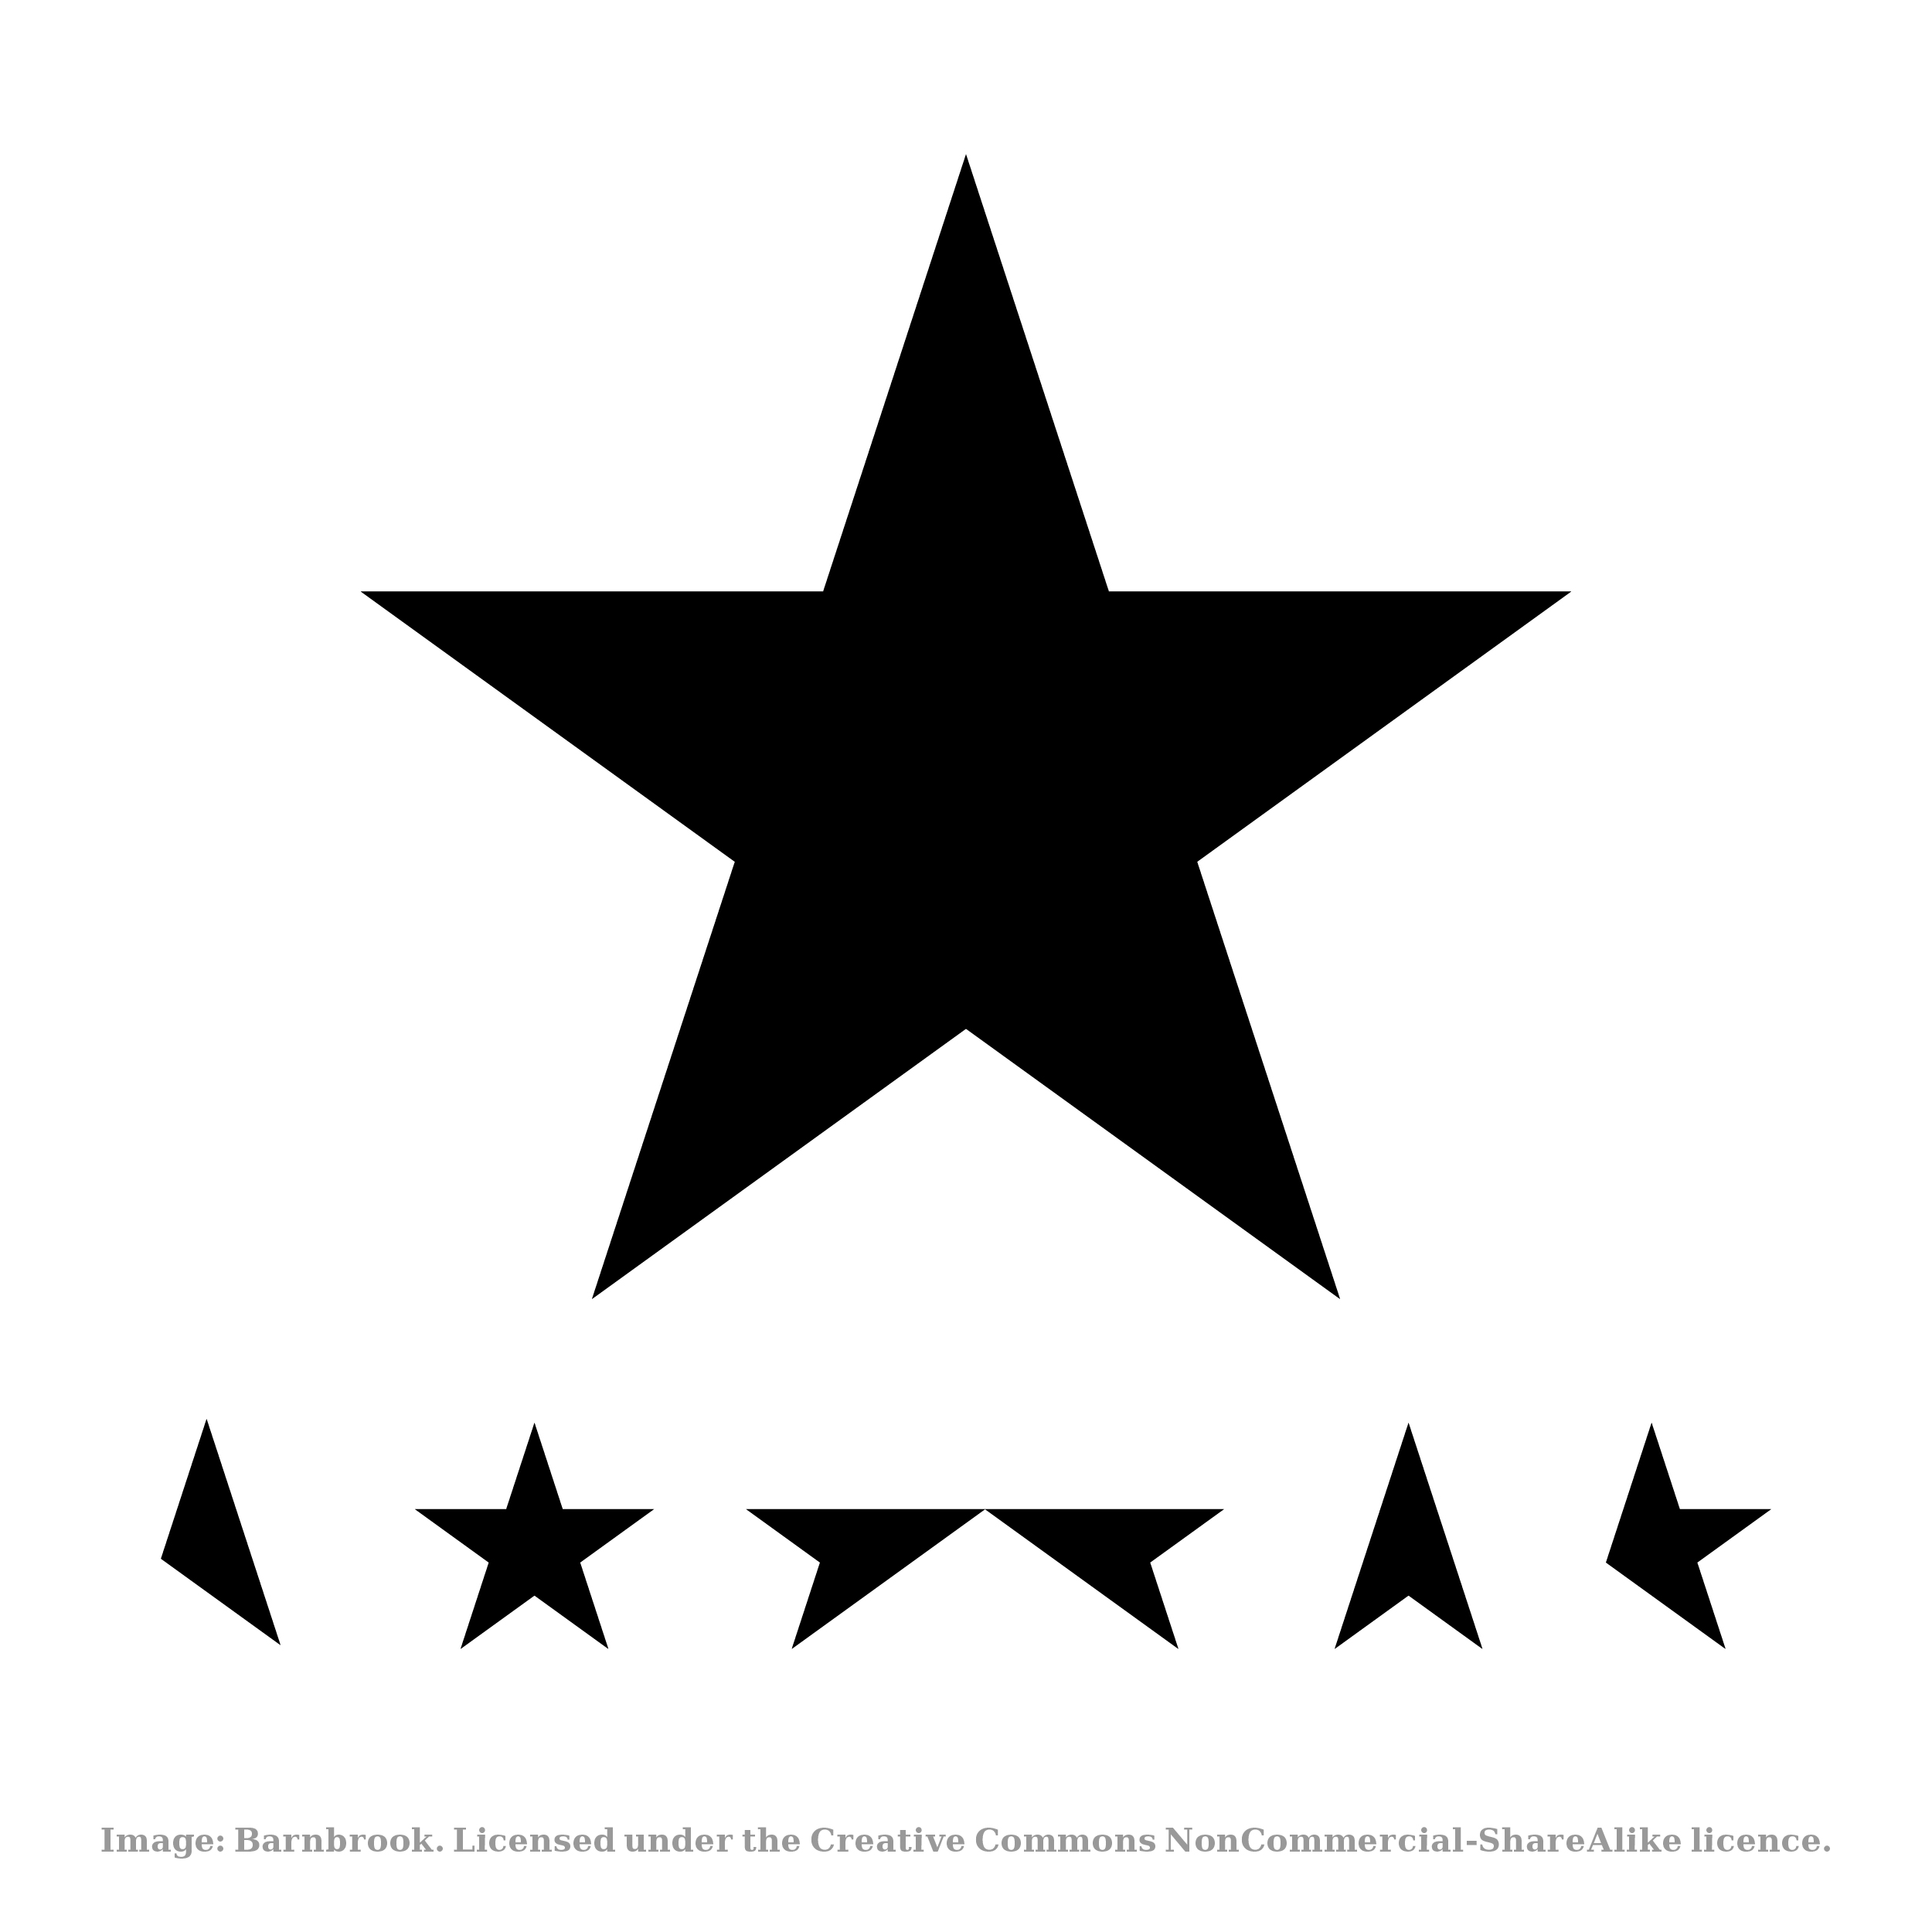 Jonathan Barnbrook on his CC-licensed art for David Bowie ...